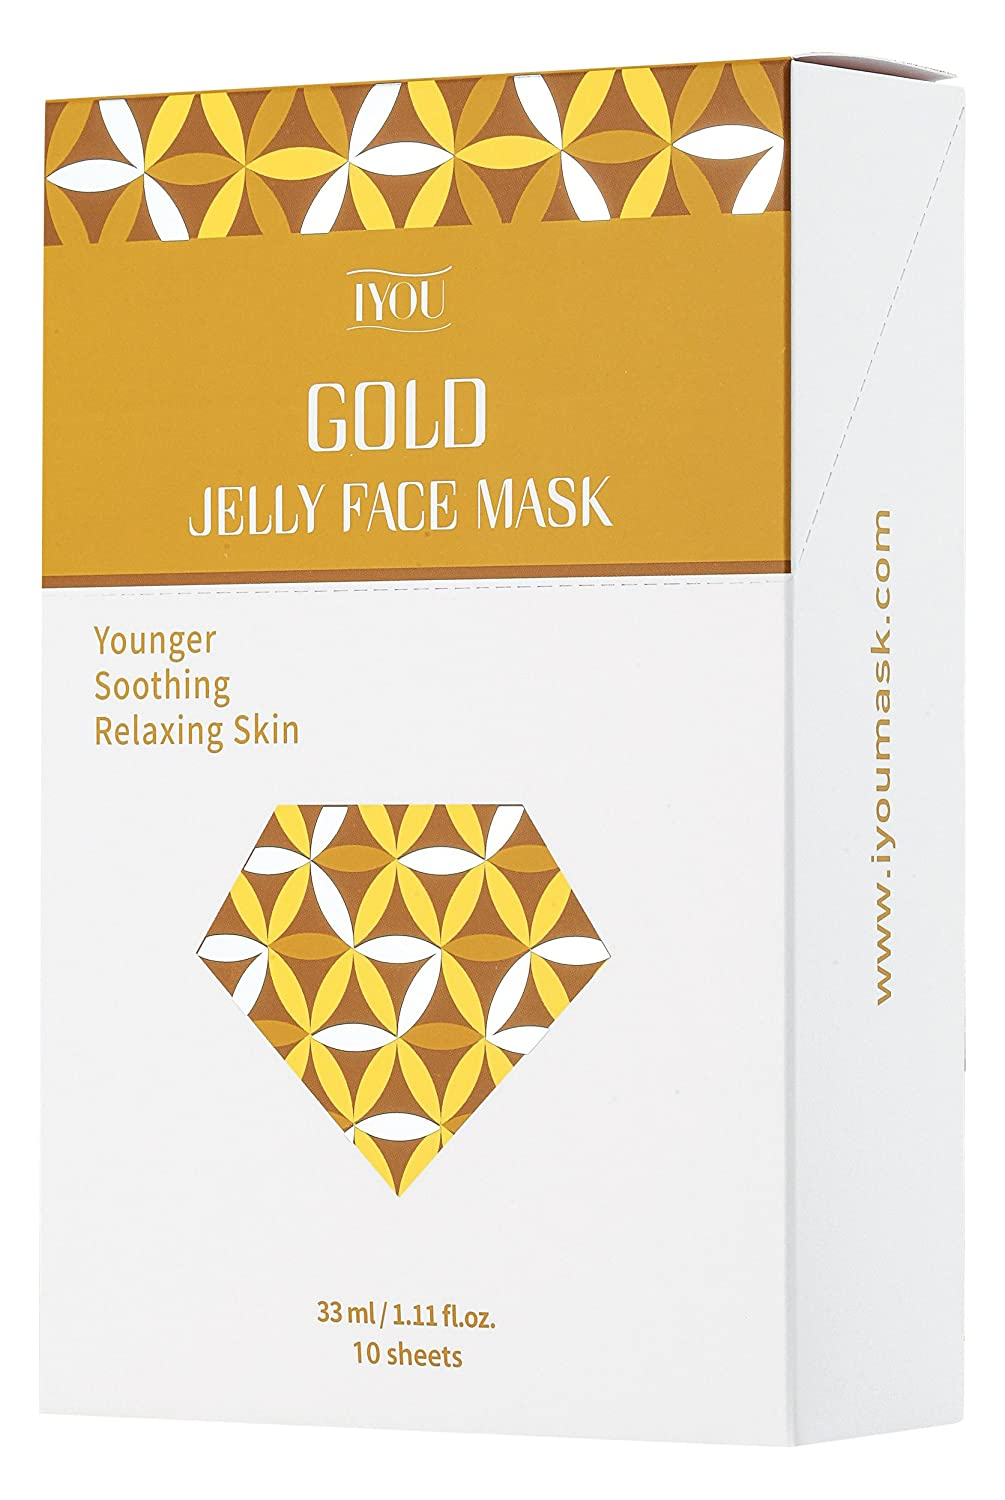 IYOU Gold Jelly Face Mask, 10 Sheets 810-r7ErlbL